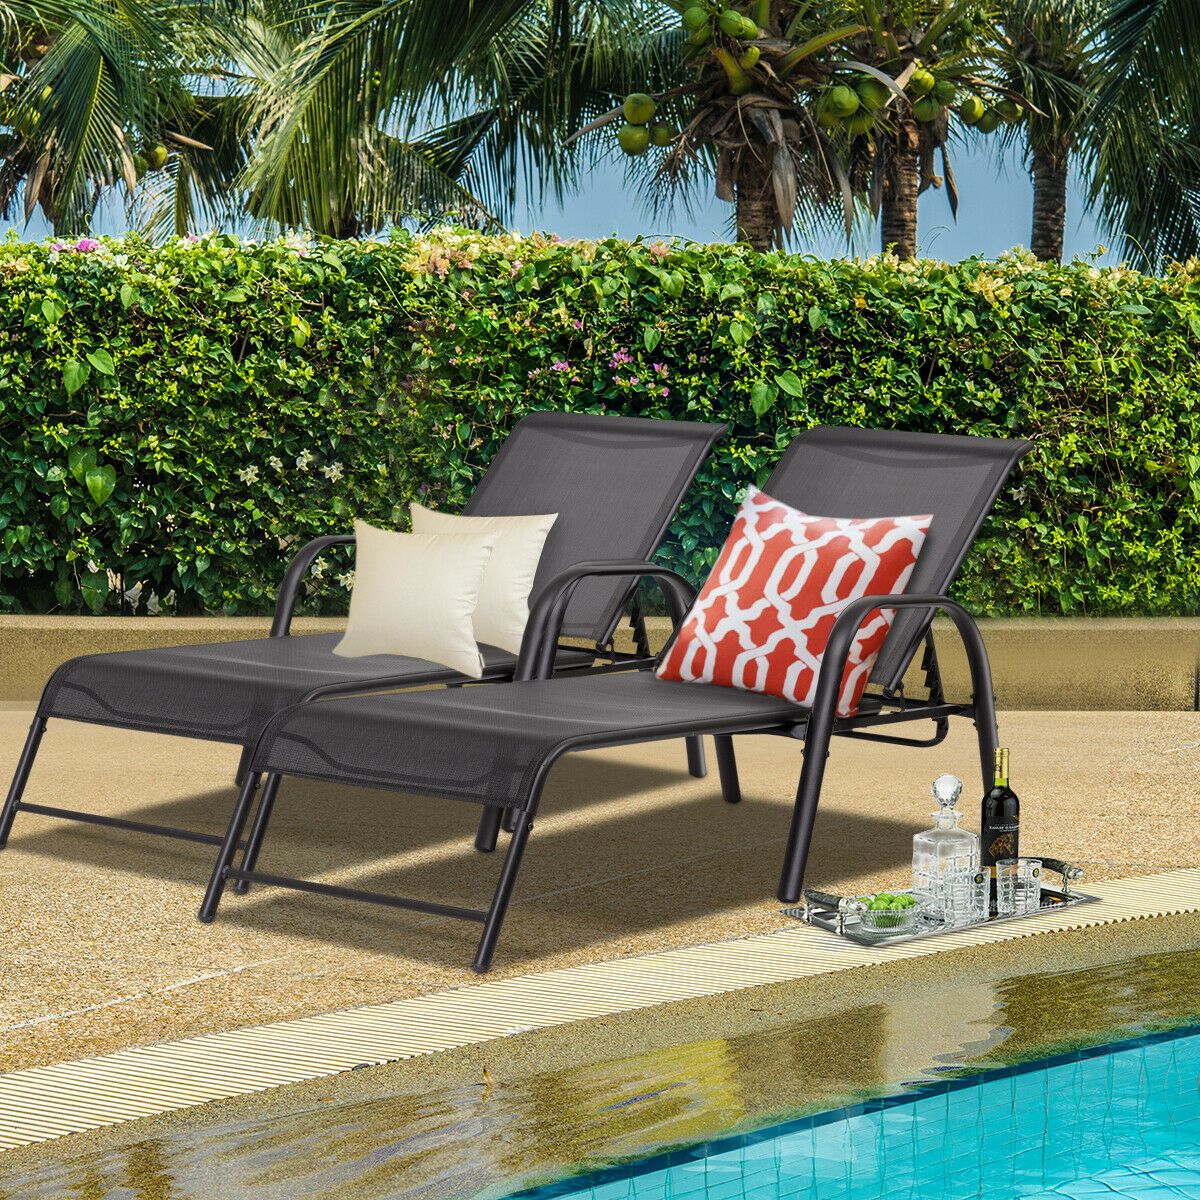 Patio & Garden in 2020 Patio lounge chairs, Patio lounge